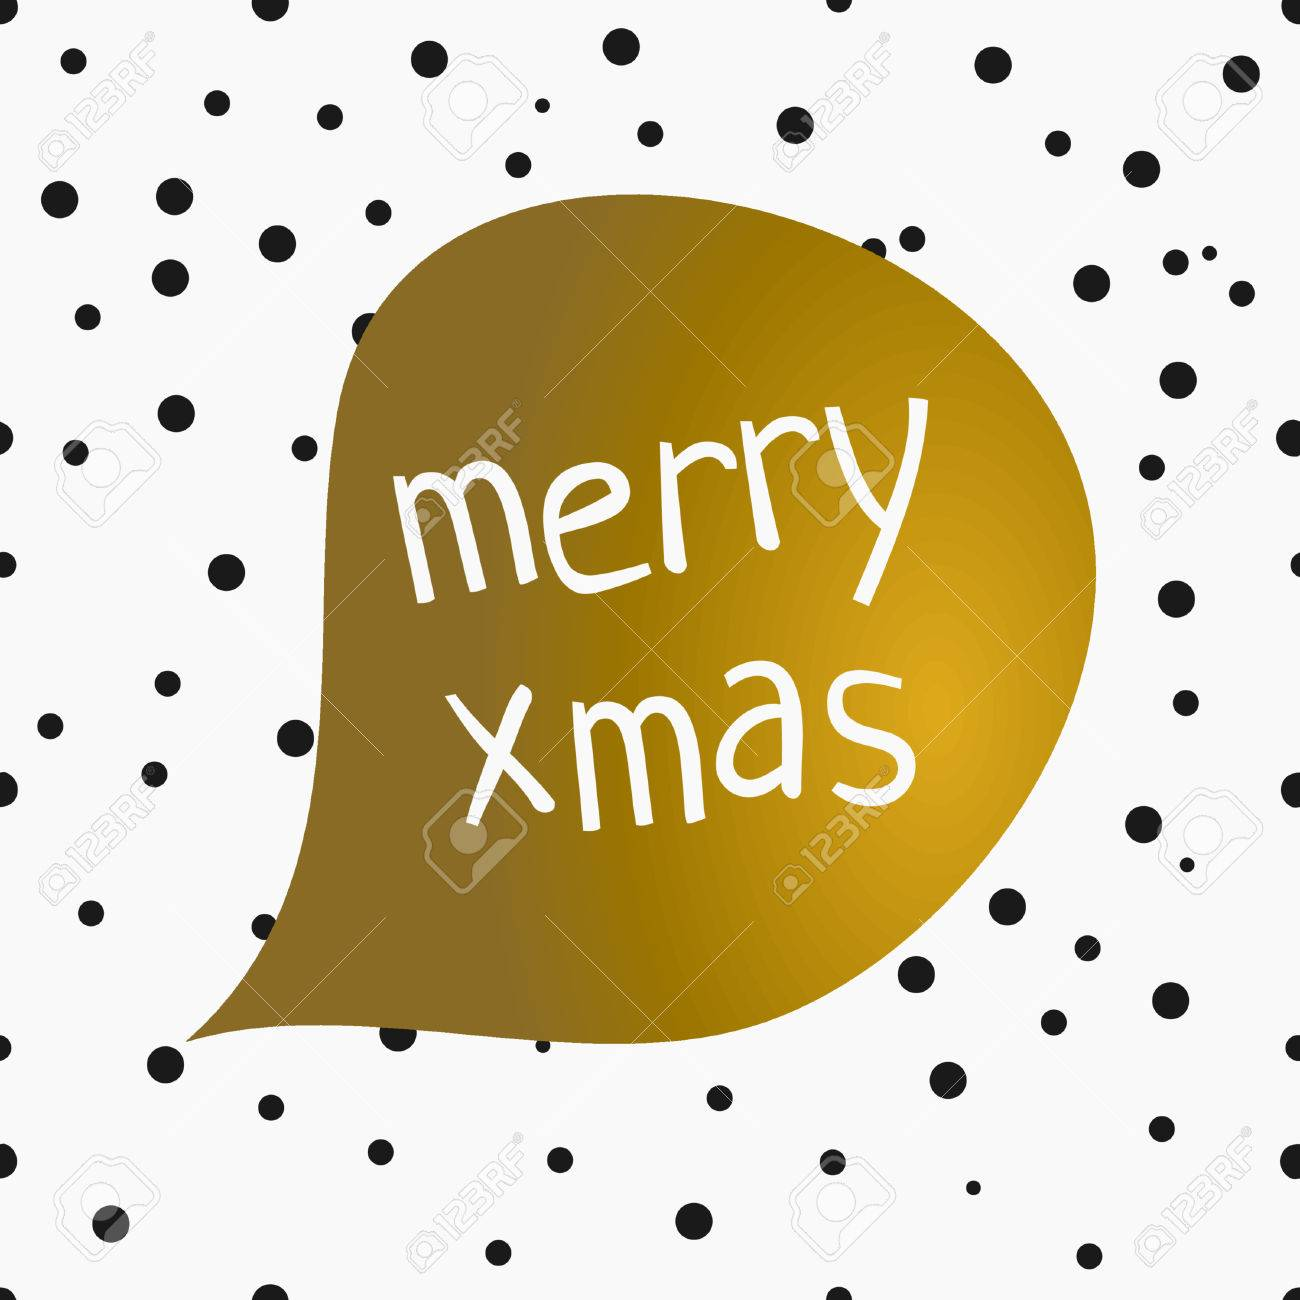 Christmas Greeting Card Design With Speech Bubble And Text Merry